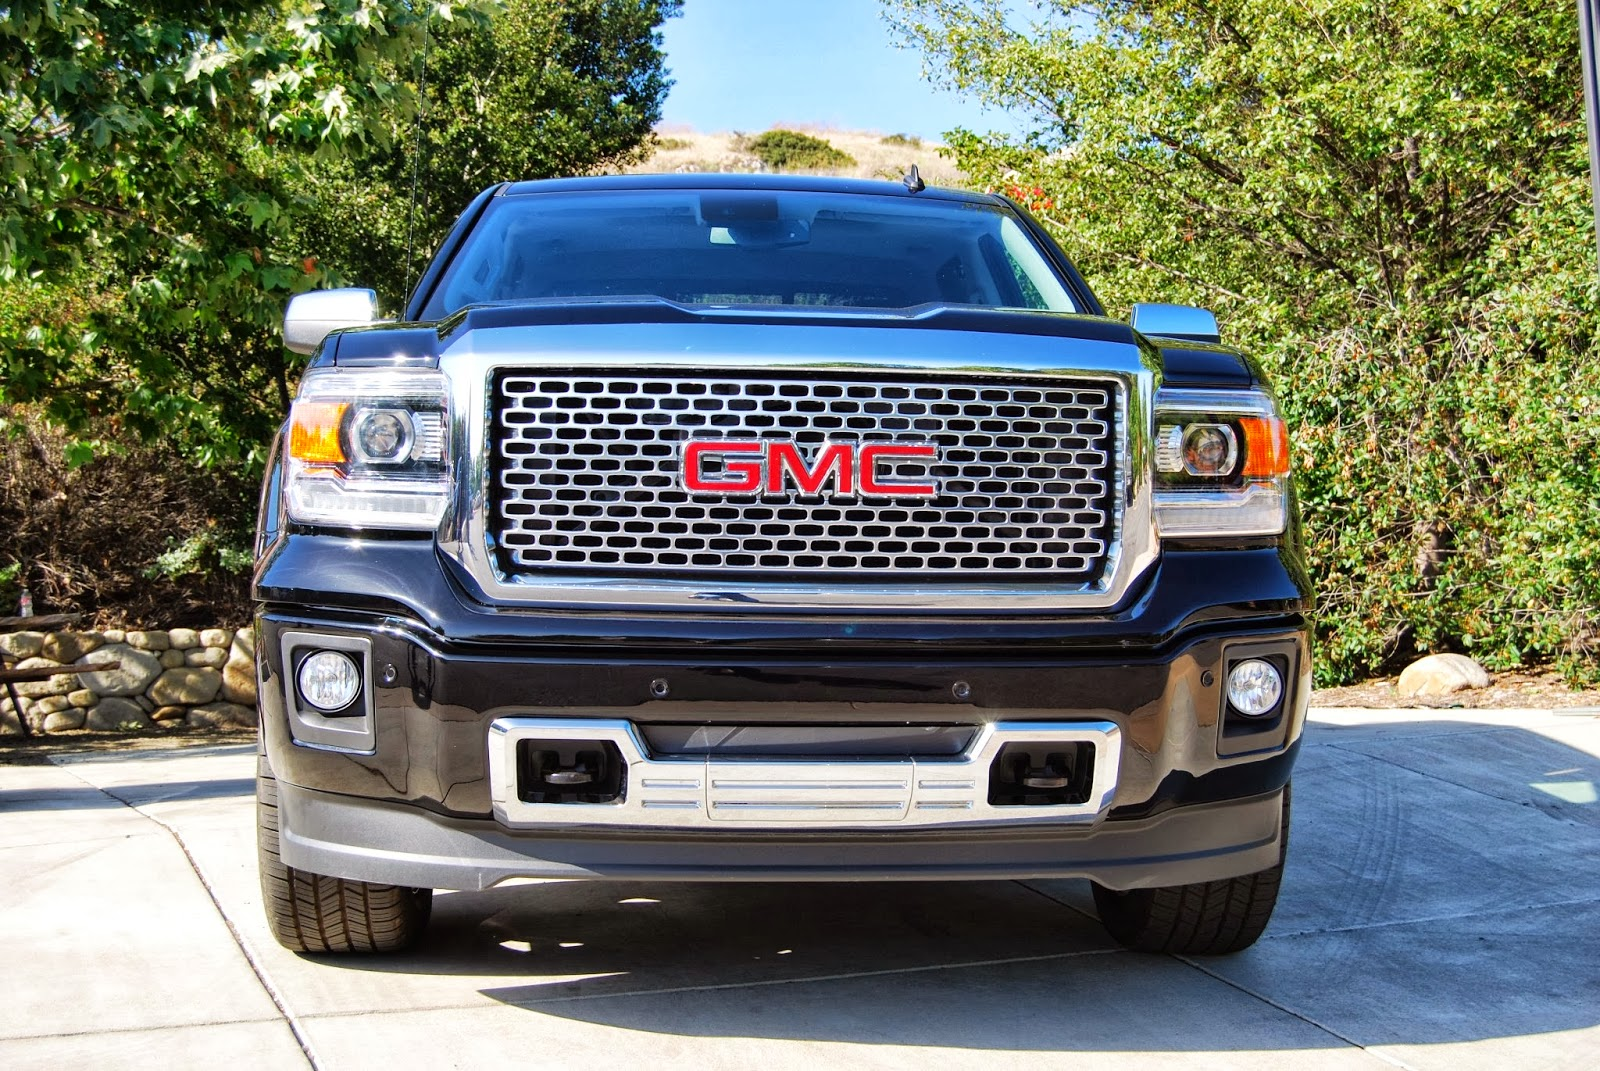 latest cars models 2014 gmc denali. Black Bedroom Furniture Sets. Home Design Ideas